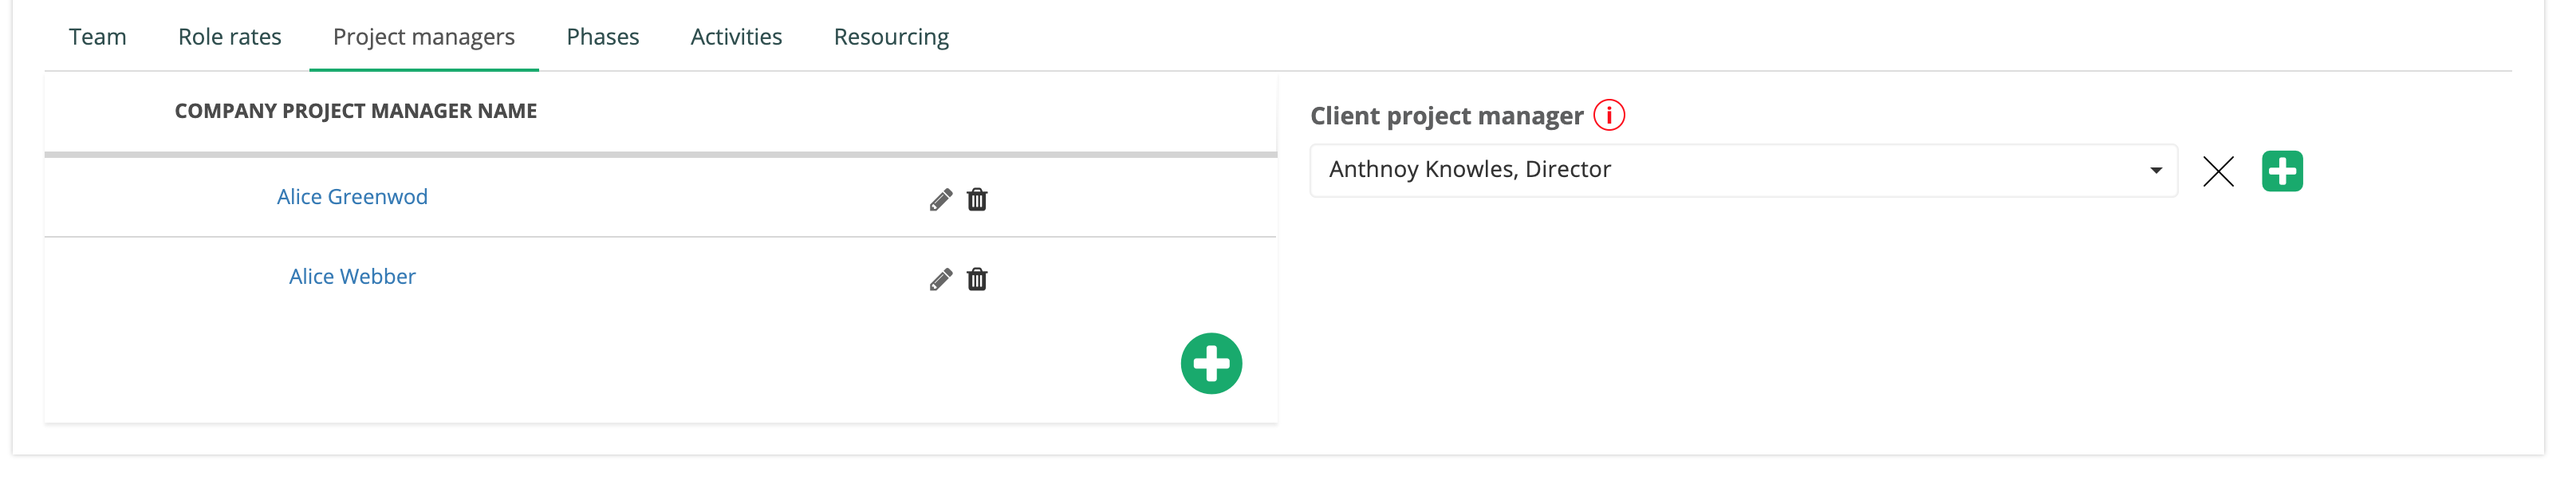 Adding the project manager and client PM